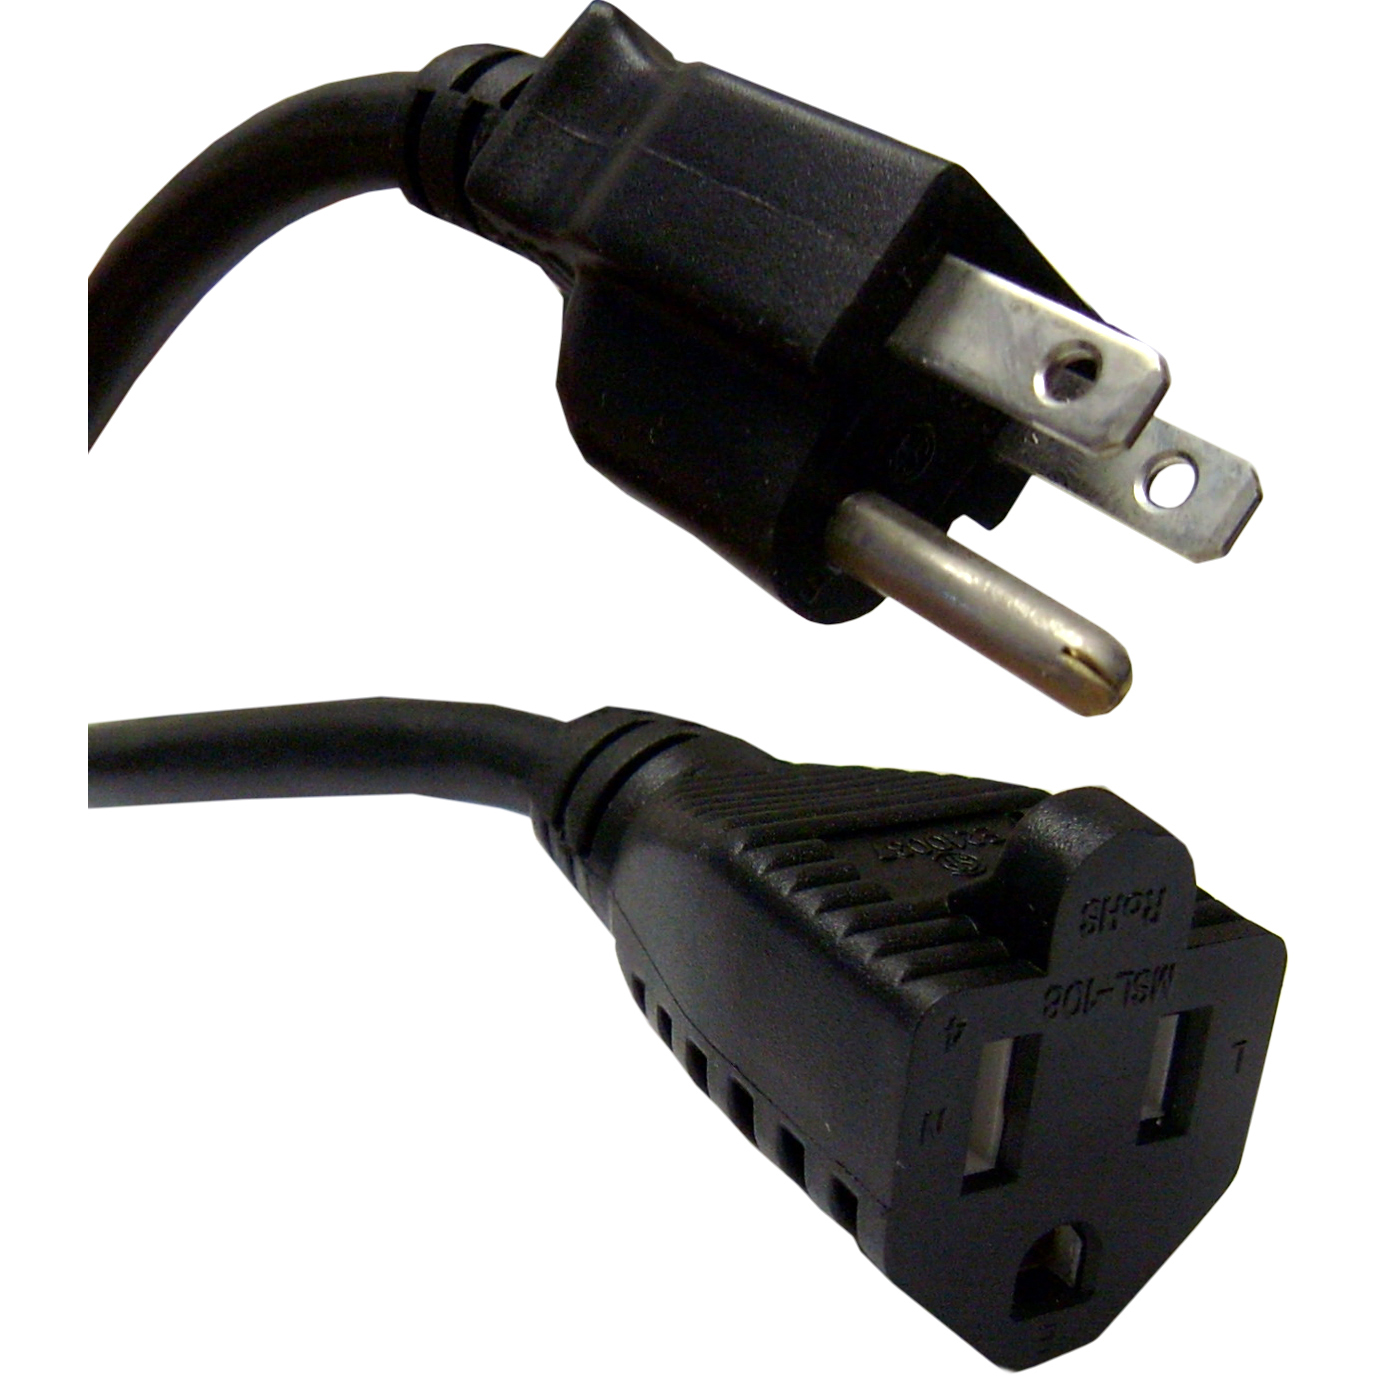 Offex Power Extension Cord, Black, NEMA 5-15P to NEMA 5-15R, 10 Amp, 6 foot